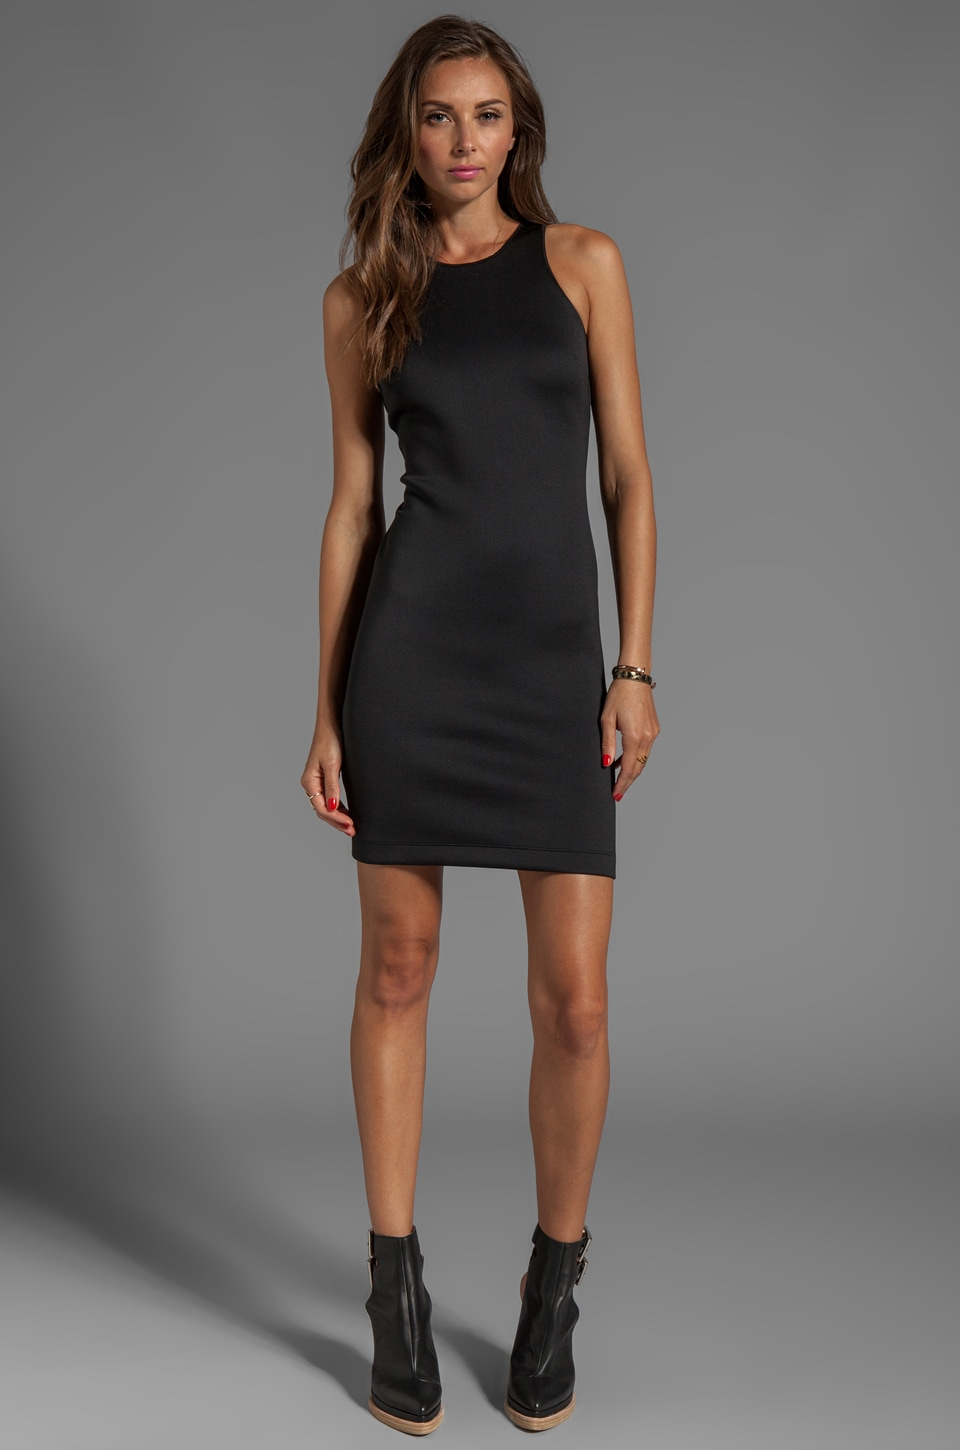 Clover Canyon Neoprene Dress in Black